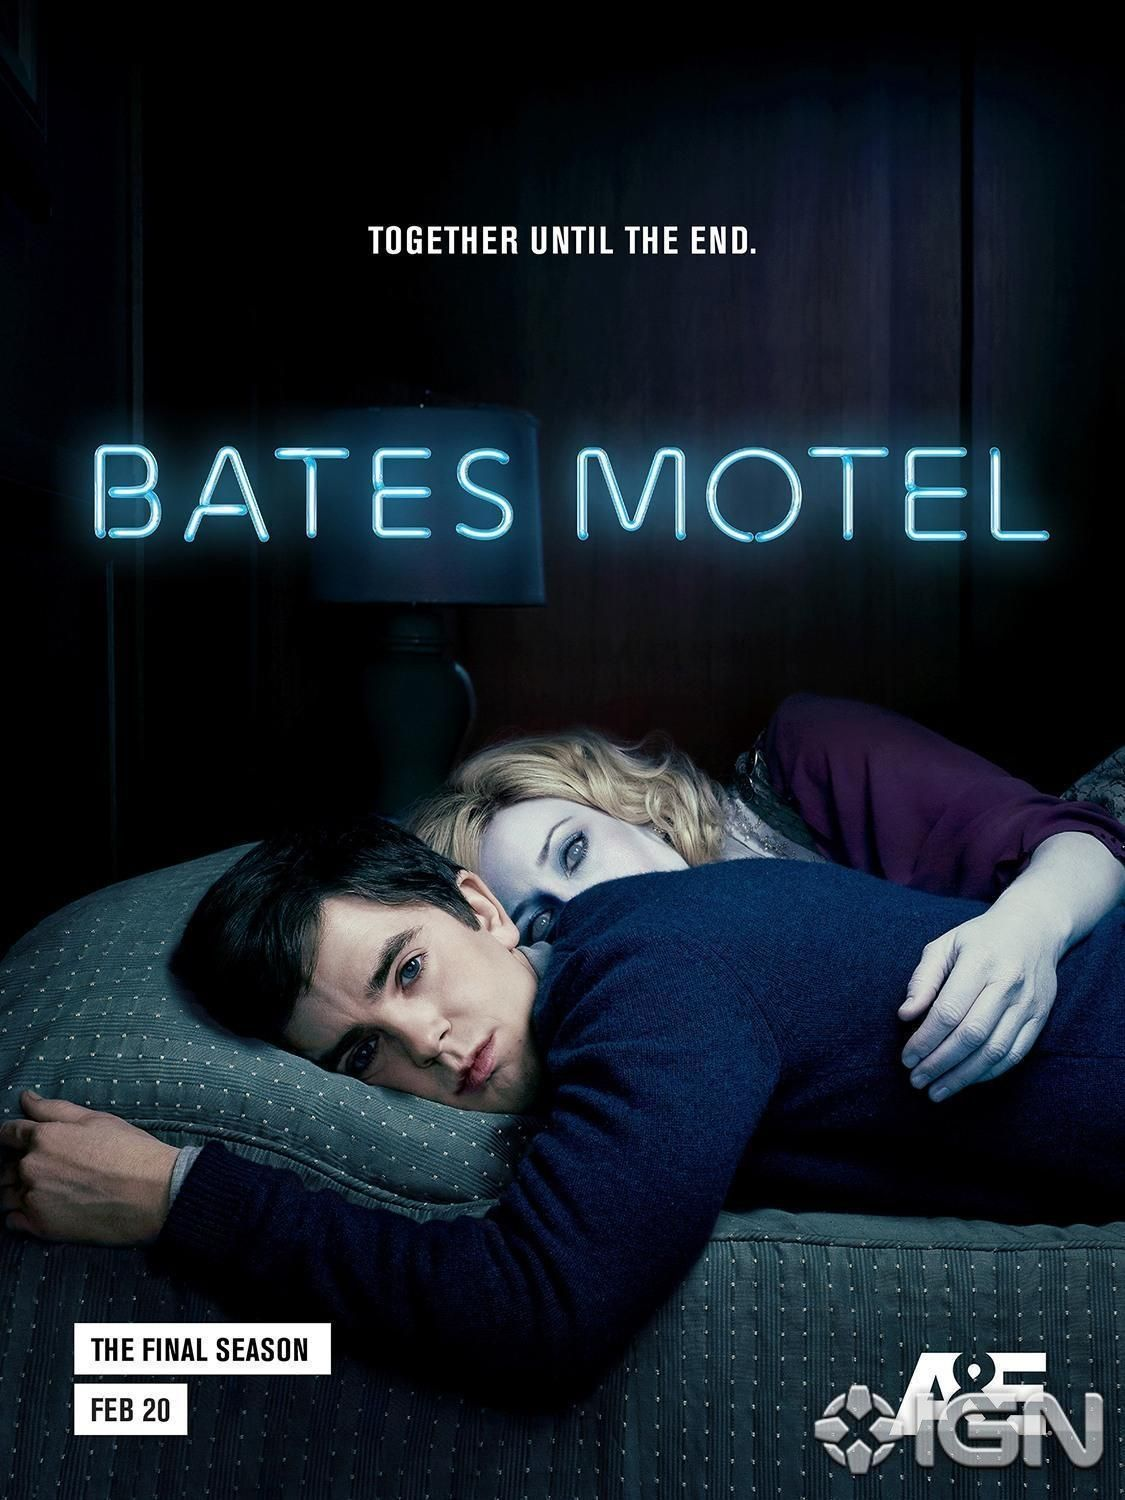 Next Month The Final Season Of Bates Motel Will Air And Judging From These New Posters Bates Motel Bates Motel Season 5 Bates Motel Movie